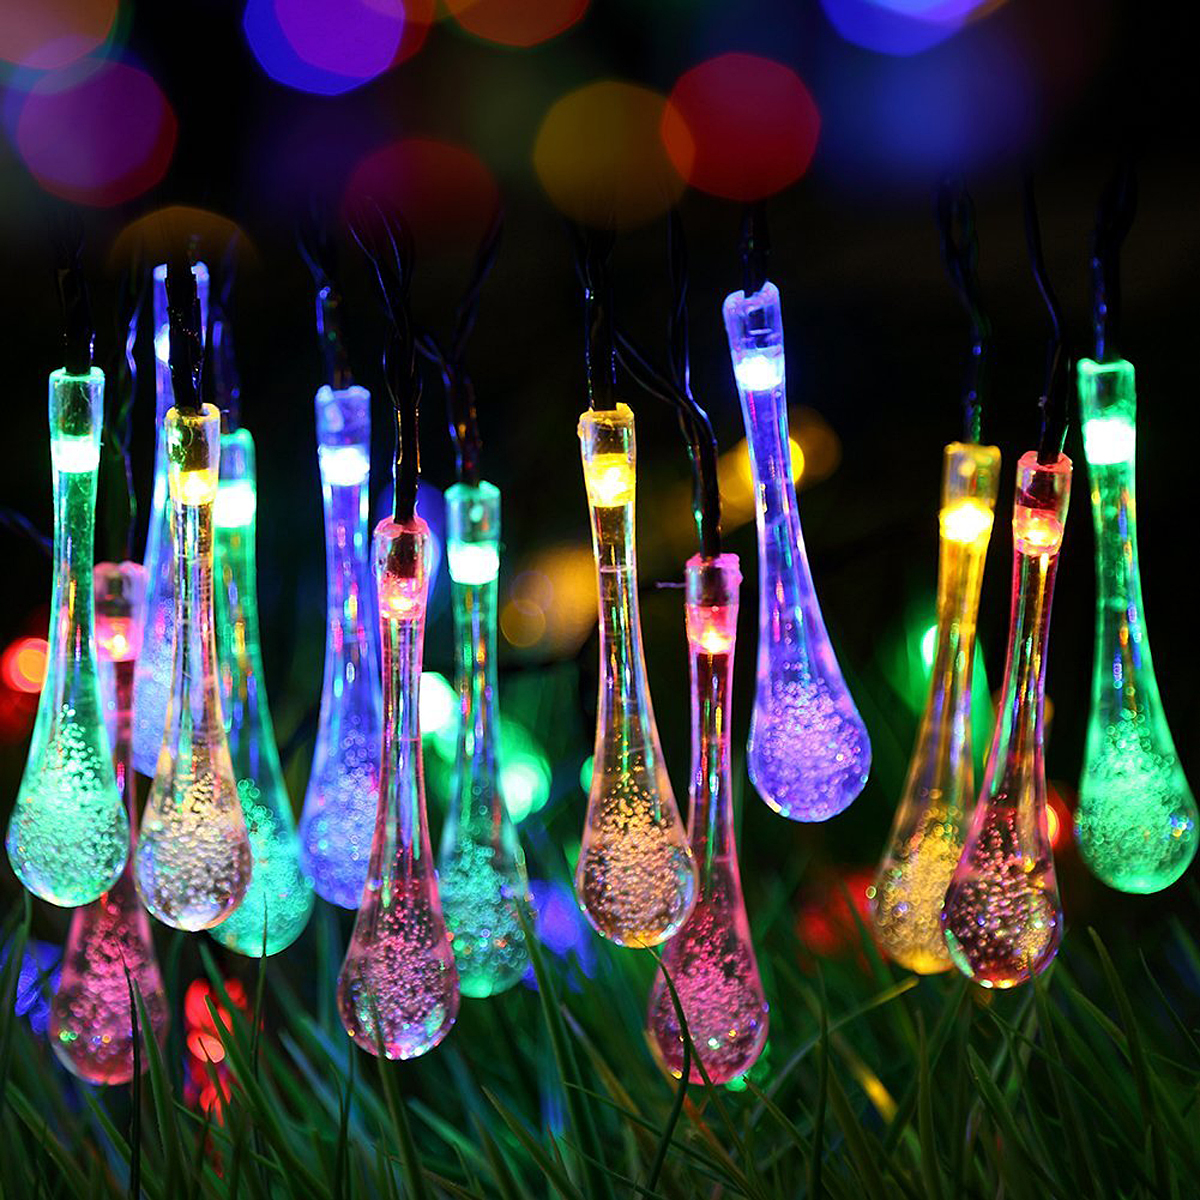 20 LED Solar Water Drop Solar Powered String Lights LED Fairy Light for Christmas Wedding Party Festival Outdoor Decoration T0.2